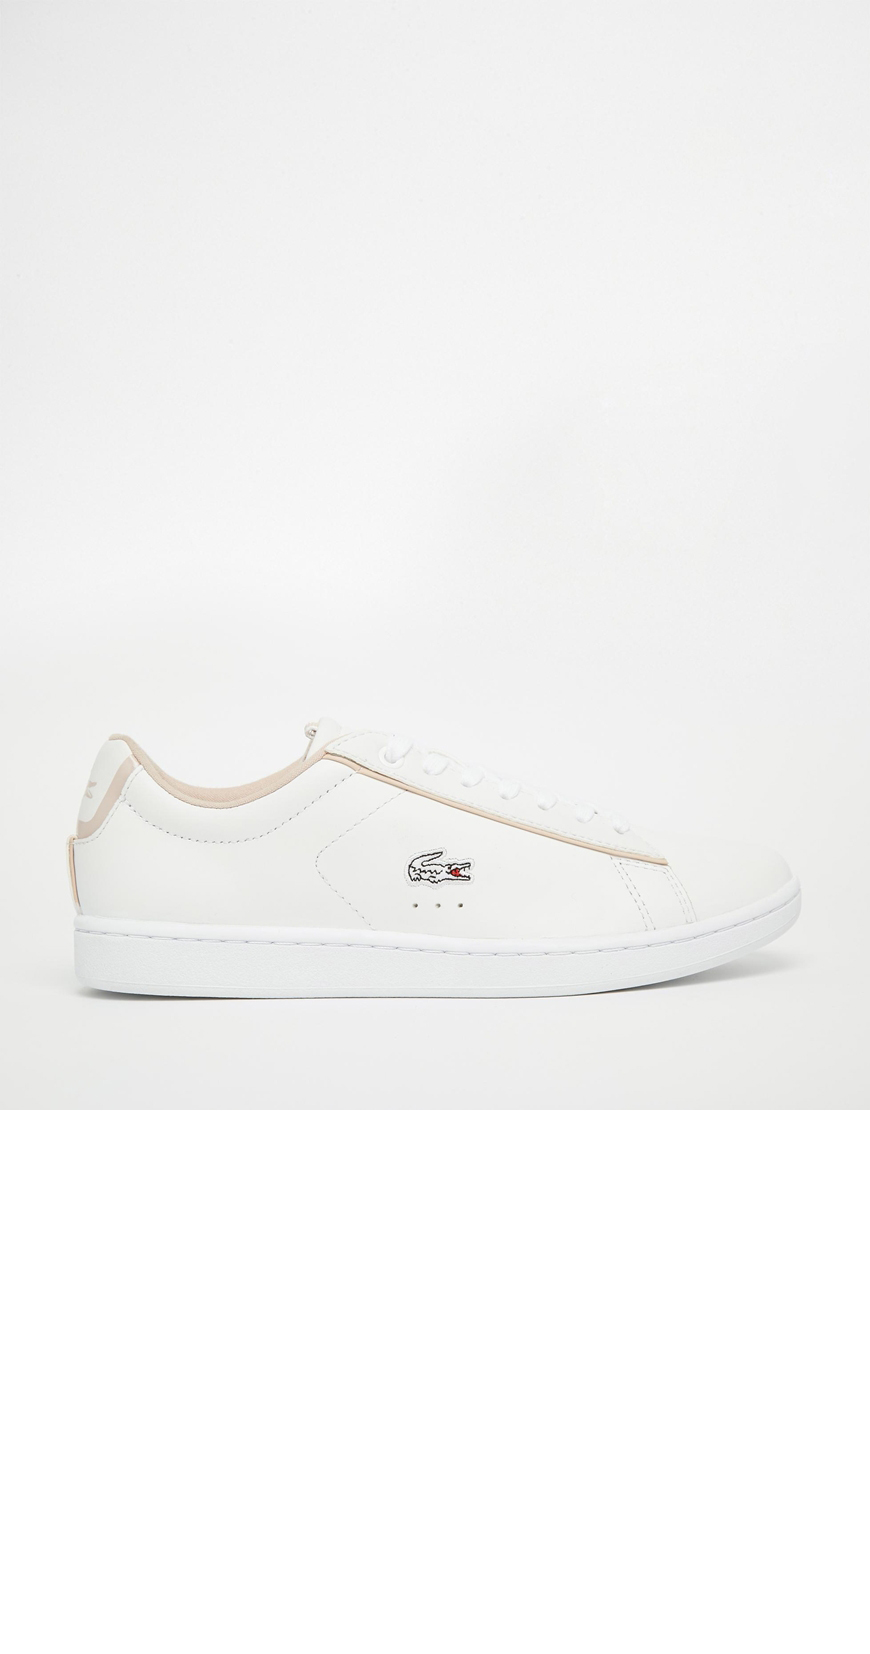 Lacoste - sneakers